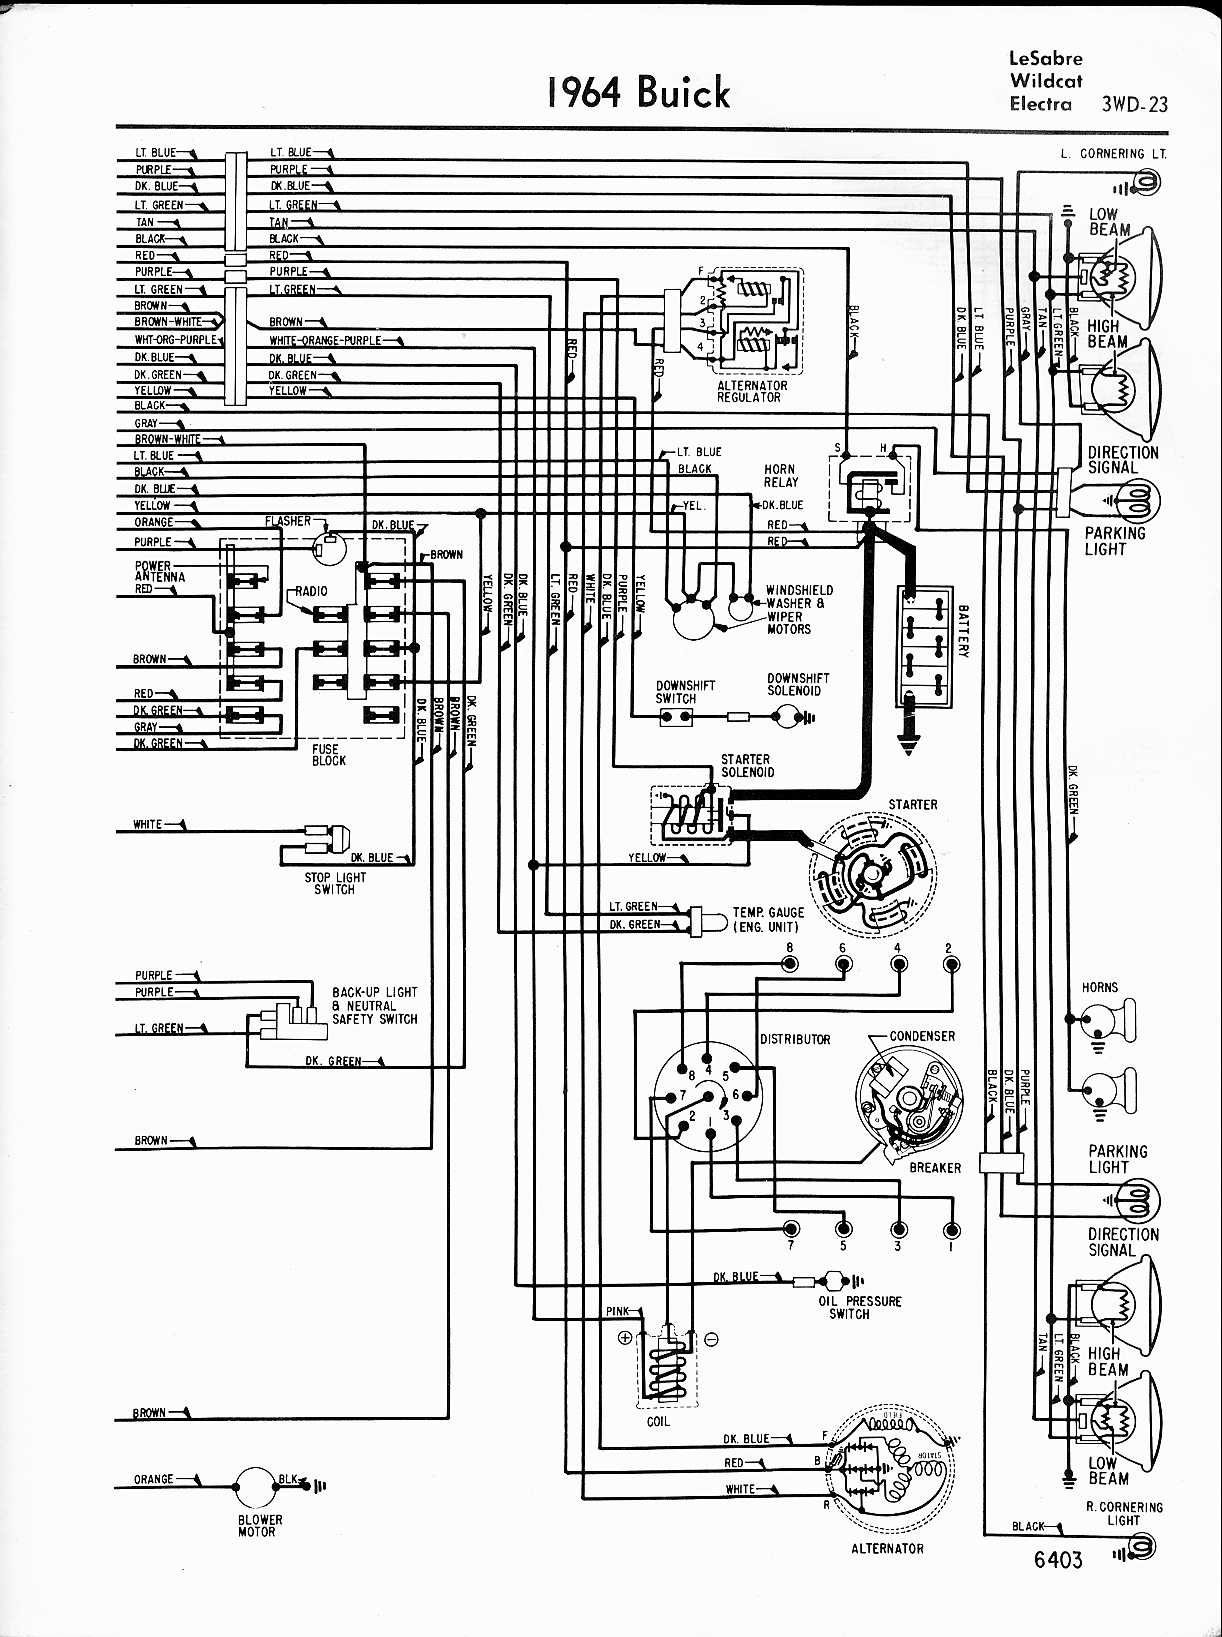 air conditioner wiring diagram 2000 buick lesabre schematic diagrams rh ogmconsulting co 1998 buick regal radio wiring diagram 1998 buick regal gs wiring diagram